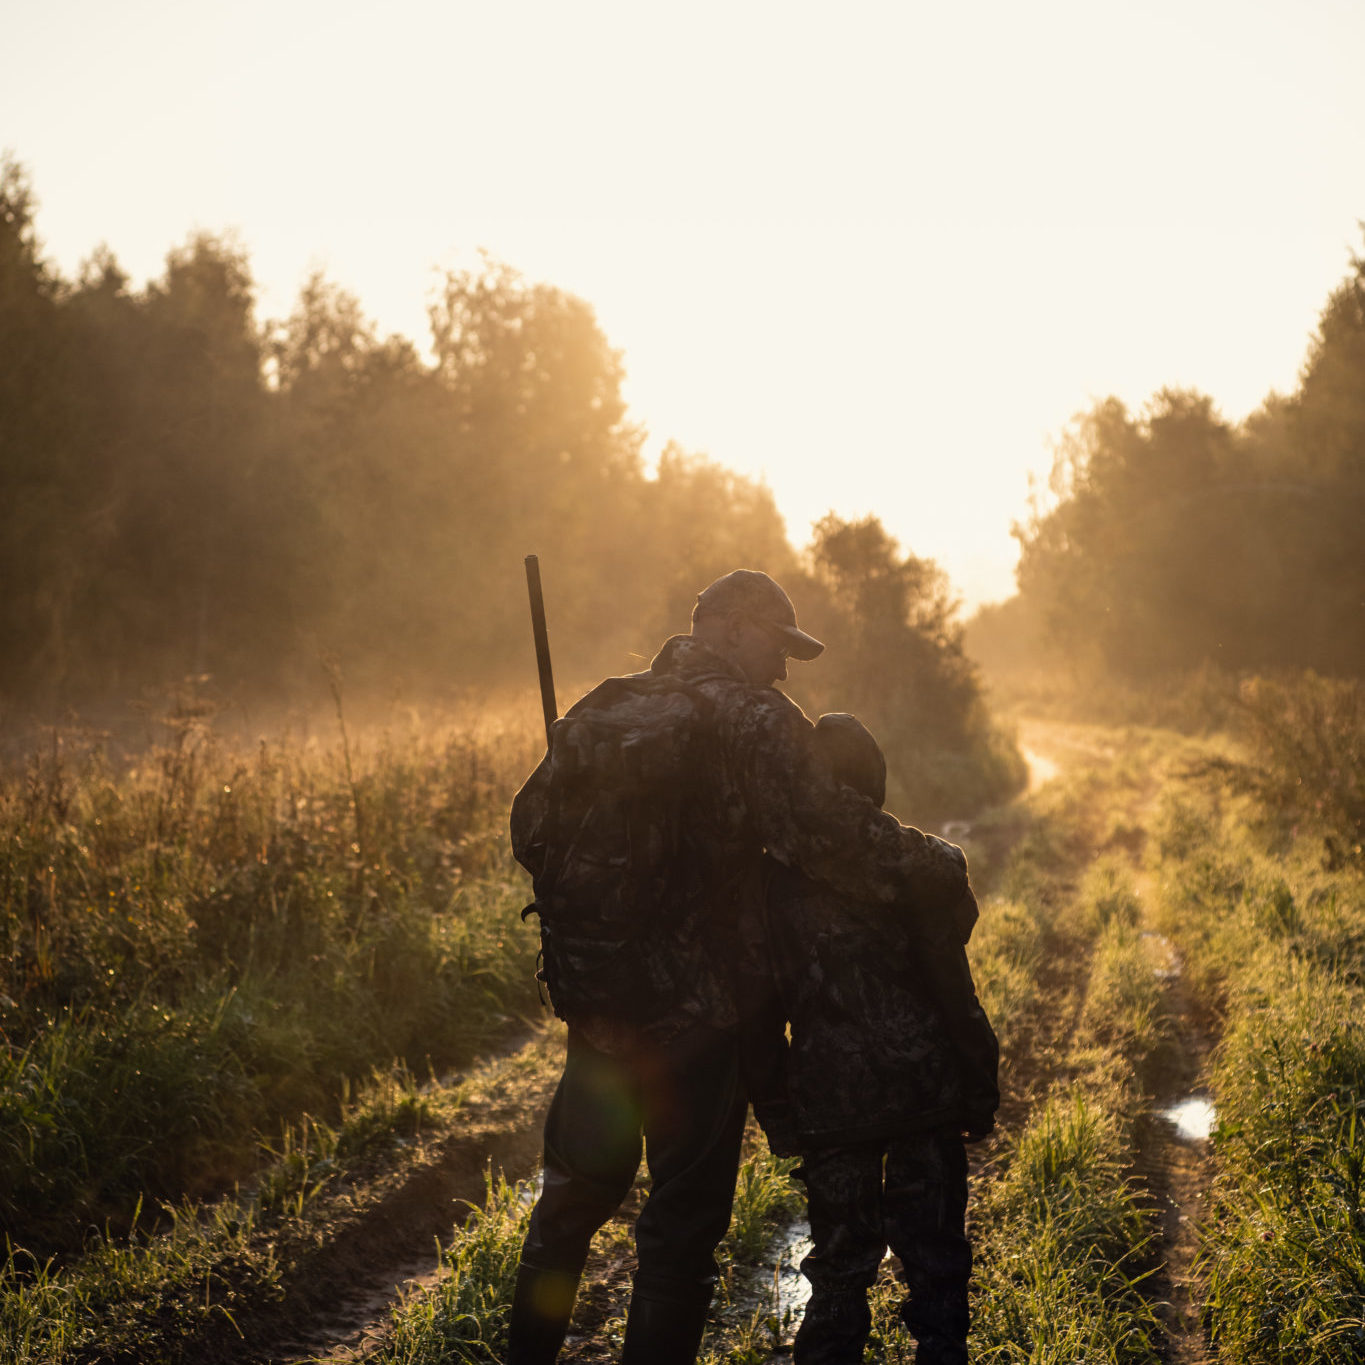 Rifle Hunter and His Son Silhouetted in Beautiful Sunset. Huntsman with a boy and rifle in a forest on a sunrise.